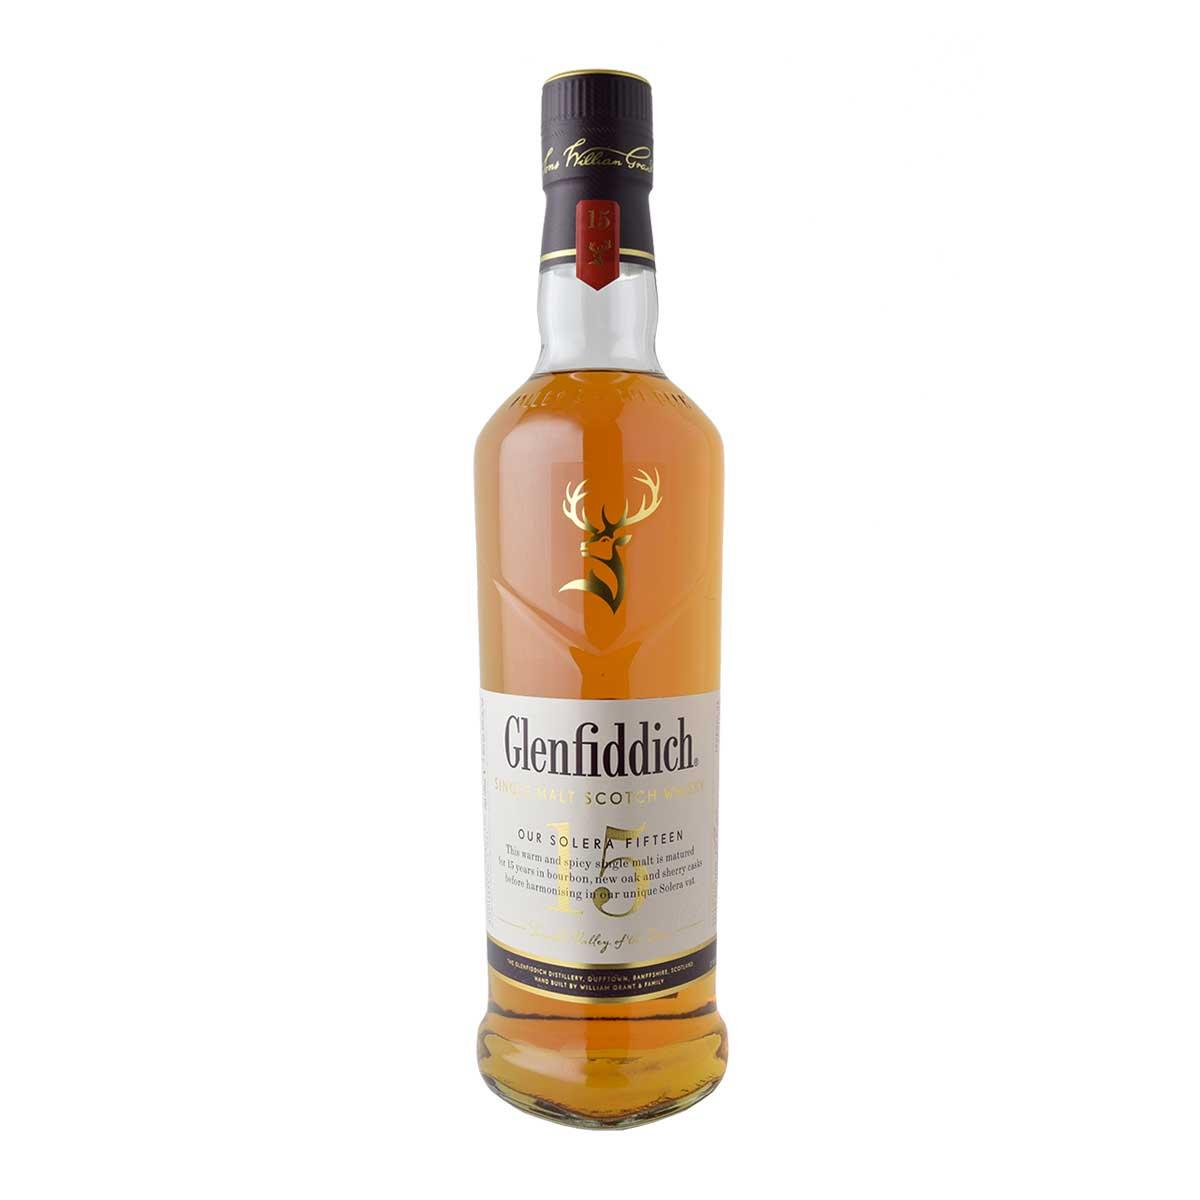 Glenfiddich 15 y.o. 700ml